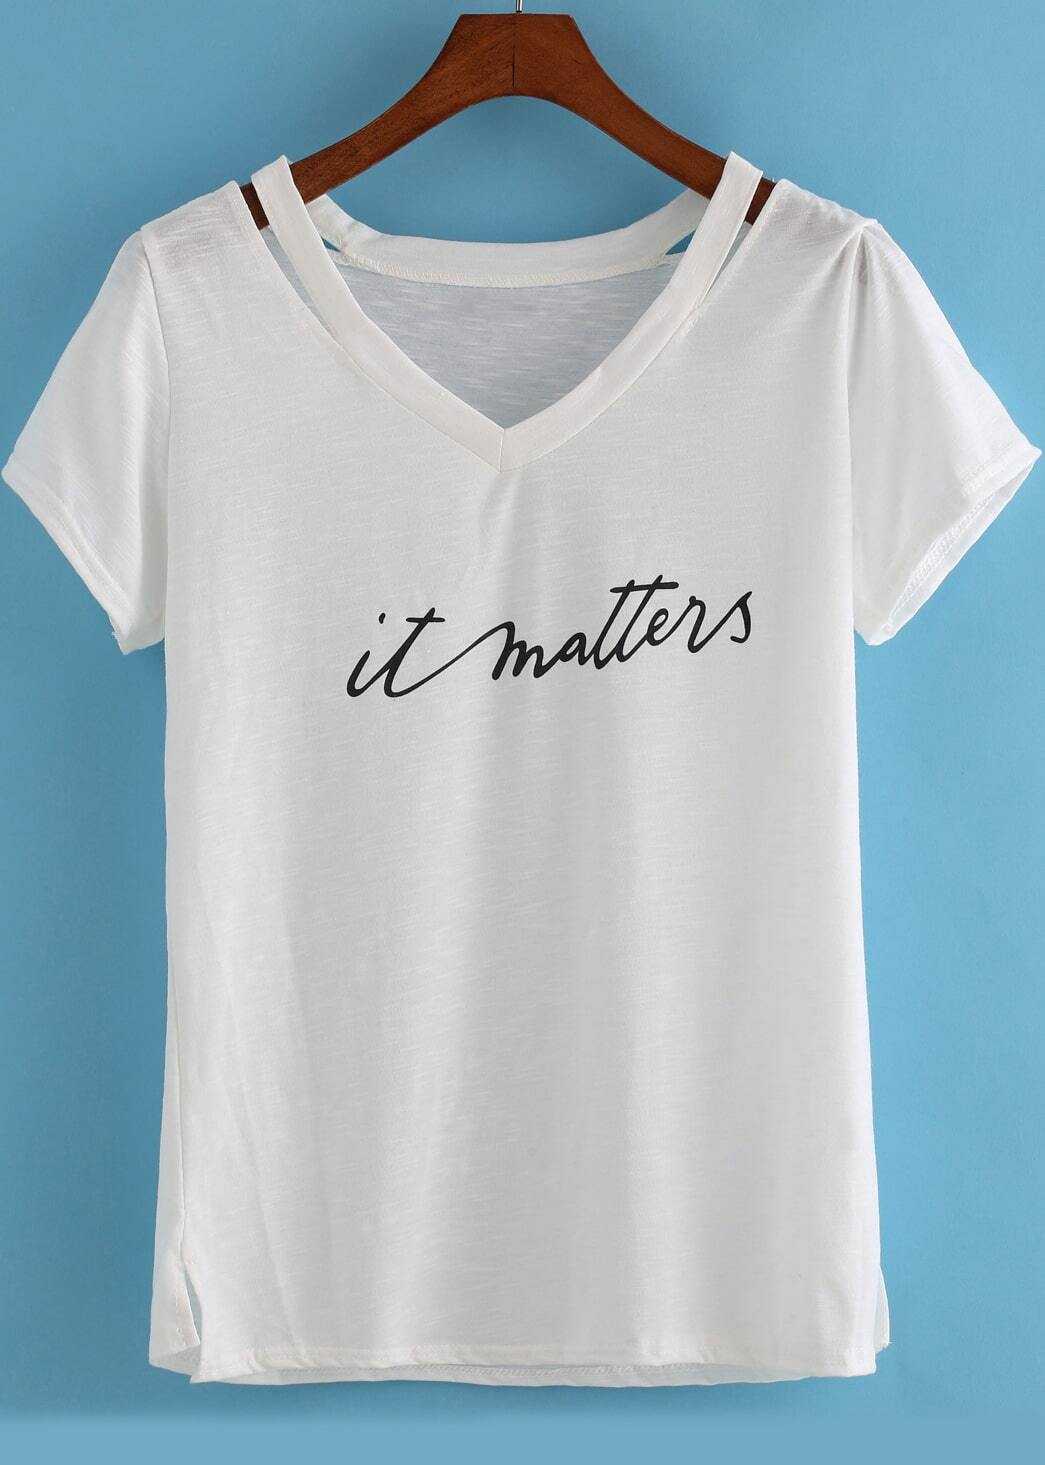 White V Neck Hollow Letters Print T-Shirt Tshirt -SheIn